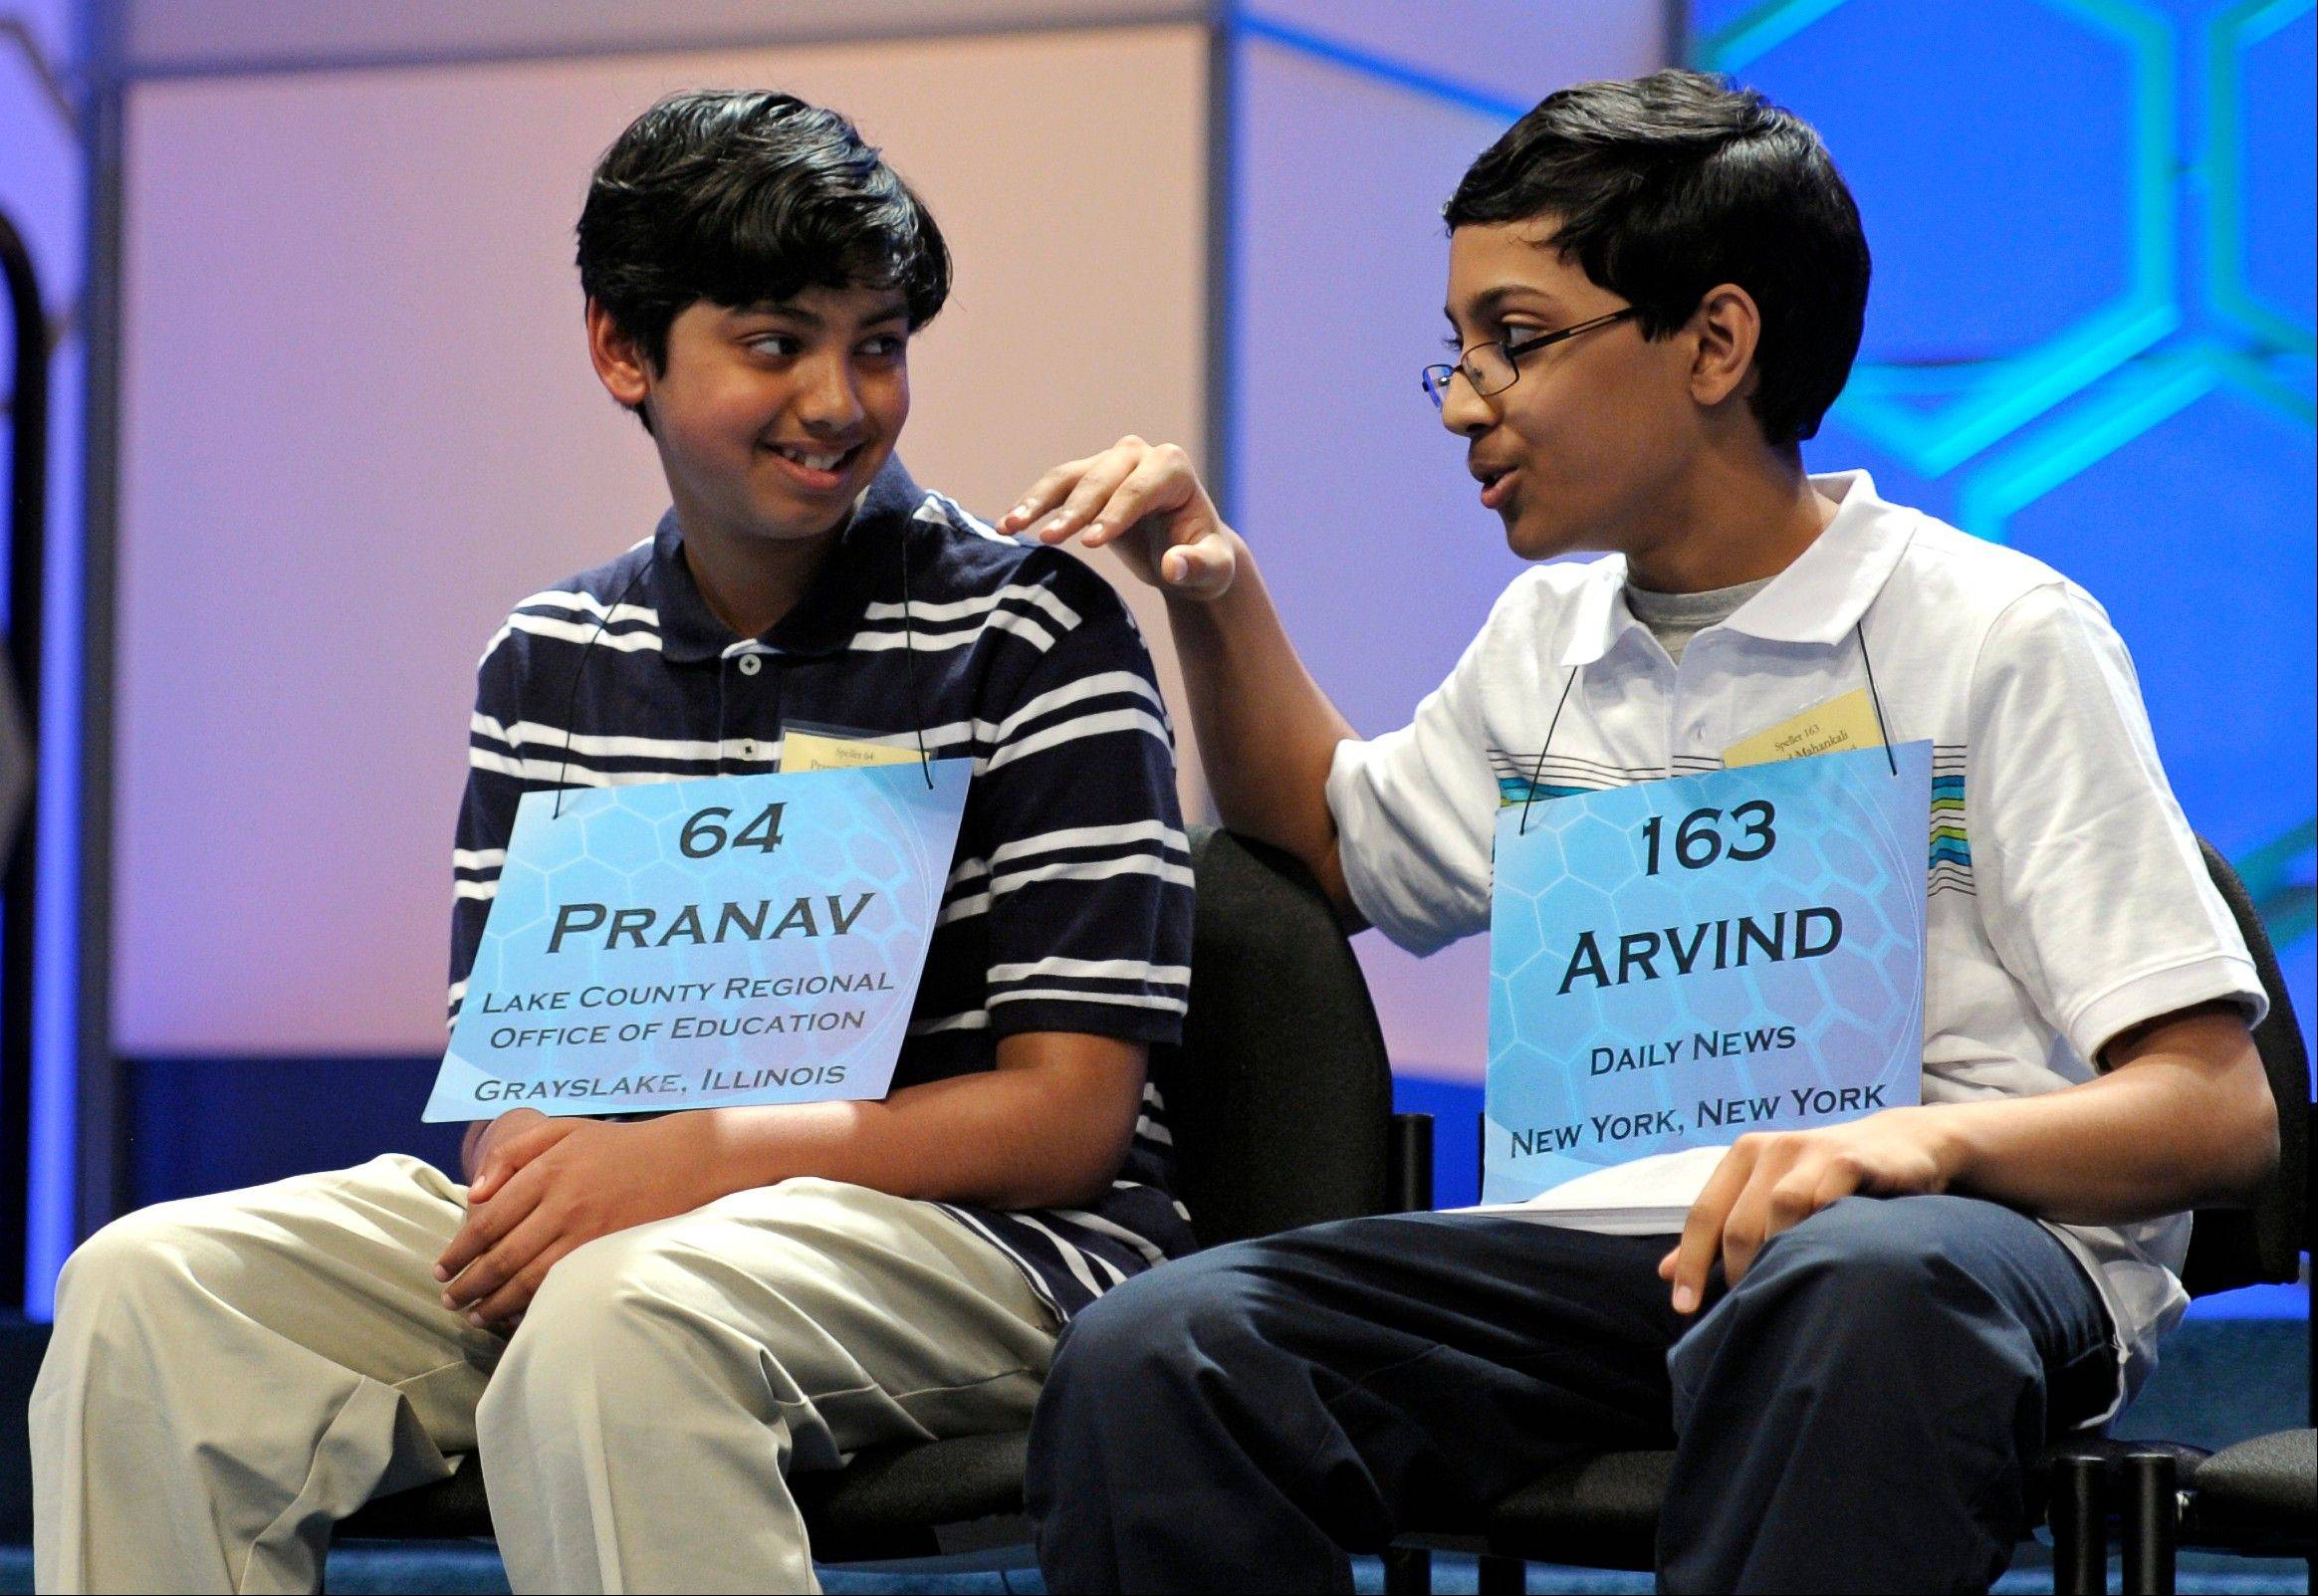 Scripps National Spelling Bee champion Arvind Mahankali, 13, of Bayside Hills, N.Y., pats second-place finisher Pranav Sivakumar, 13, of Tower Lakes on the shoulder after Sivakumar incorrectly spelled his final word during the finals in Oxon Hill, Md.